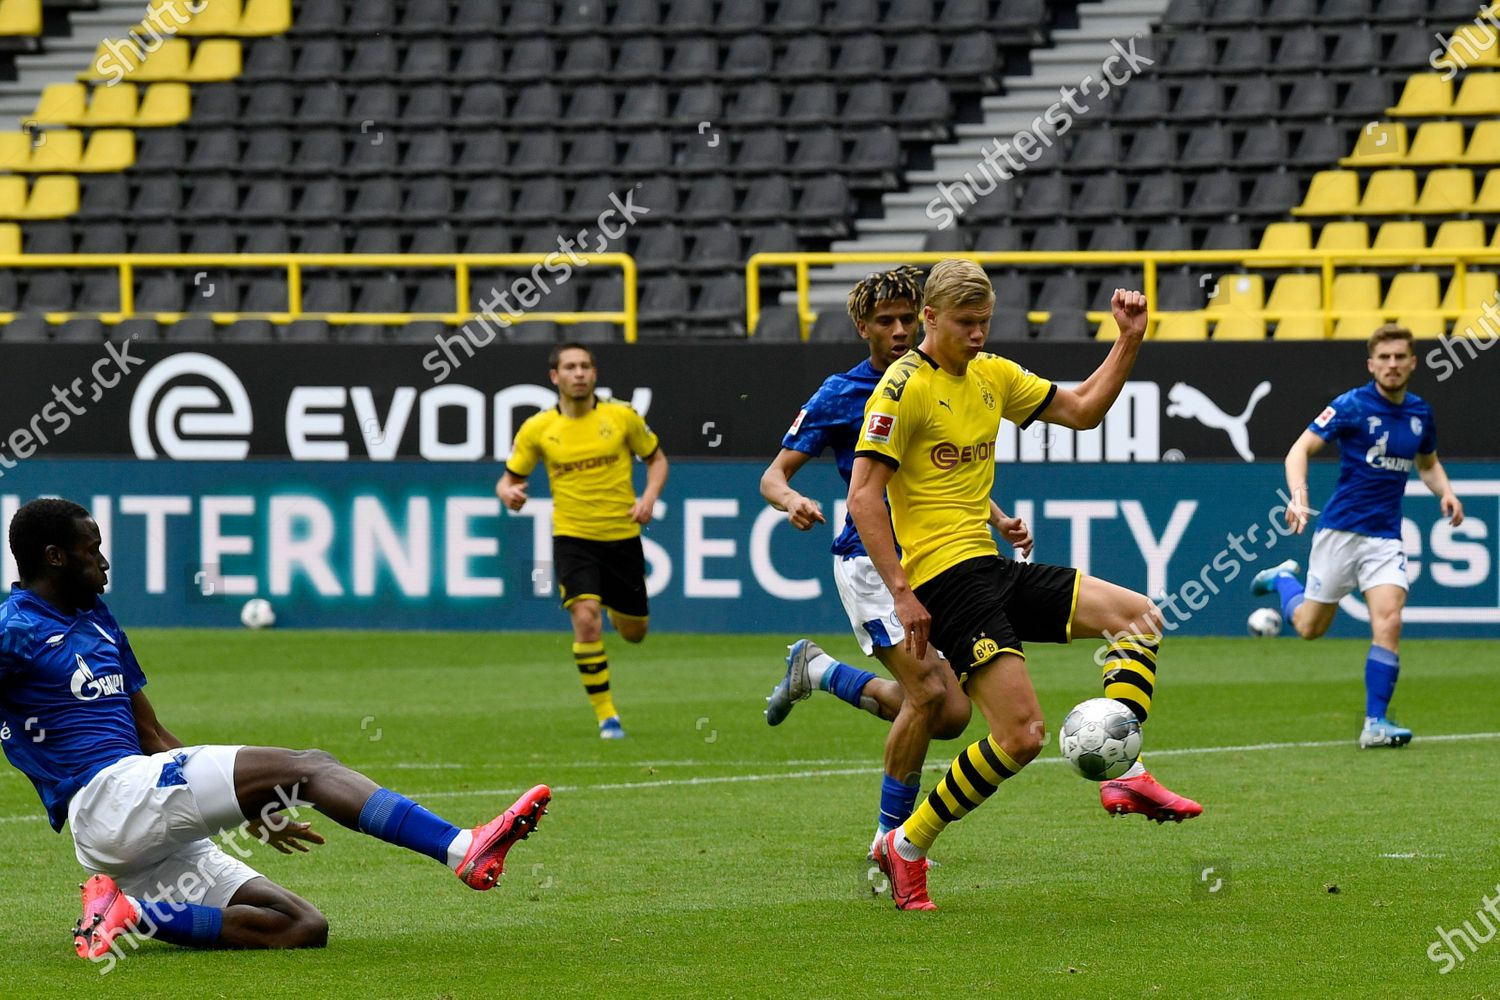 Dortmunds Erling Haaland Scores Opening Goal During Editorial Stock Photo Stock Image Shutterstock